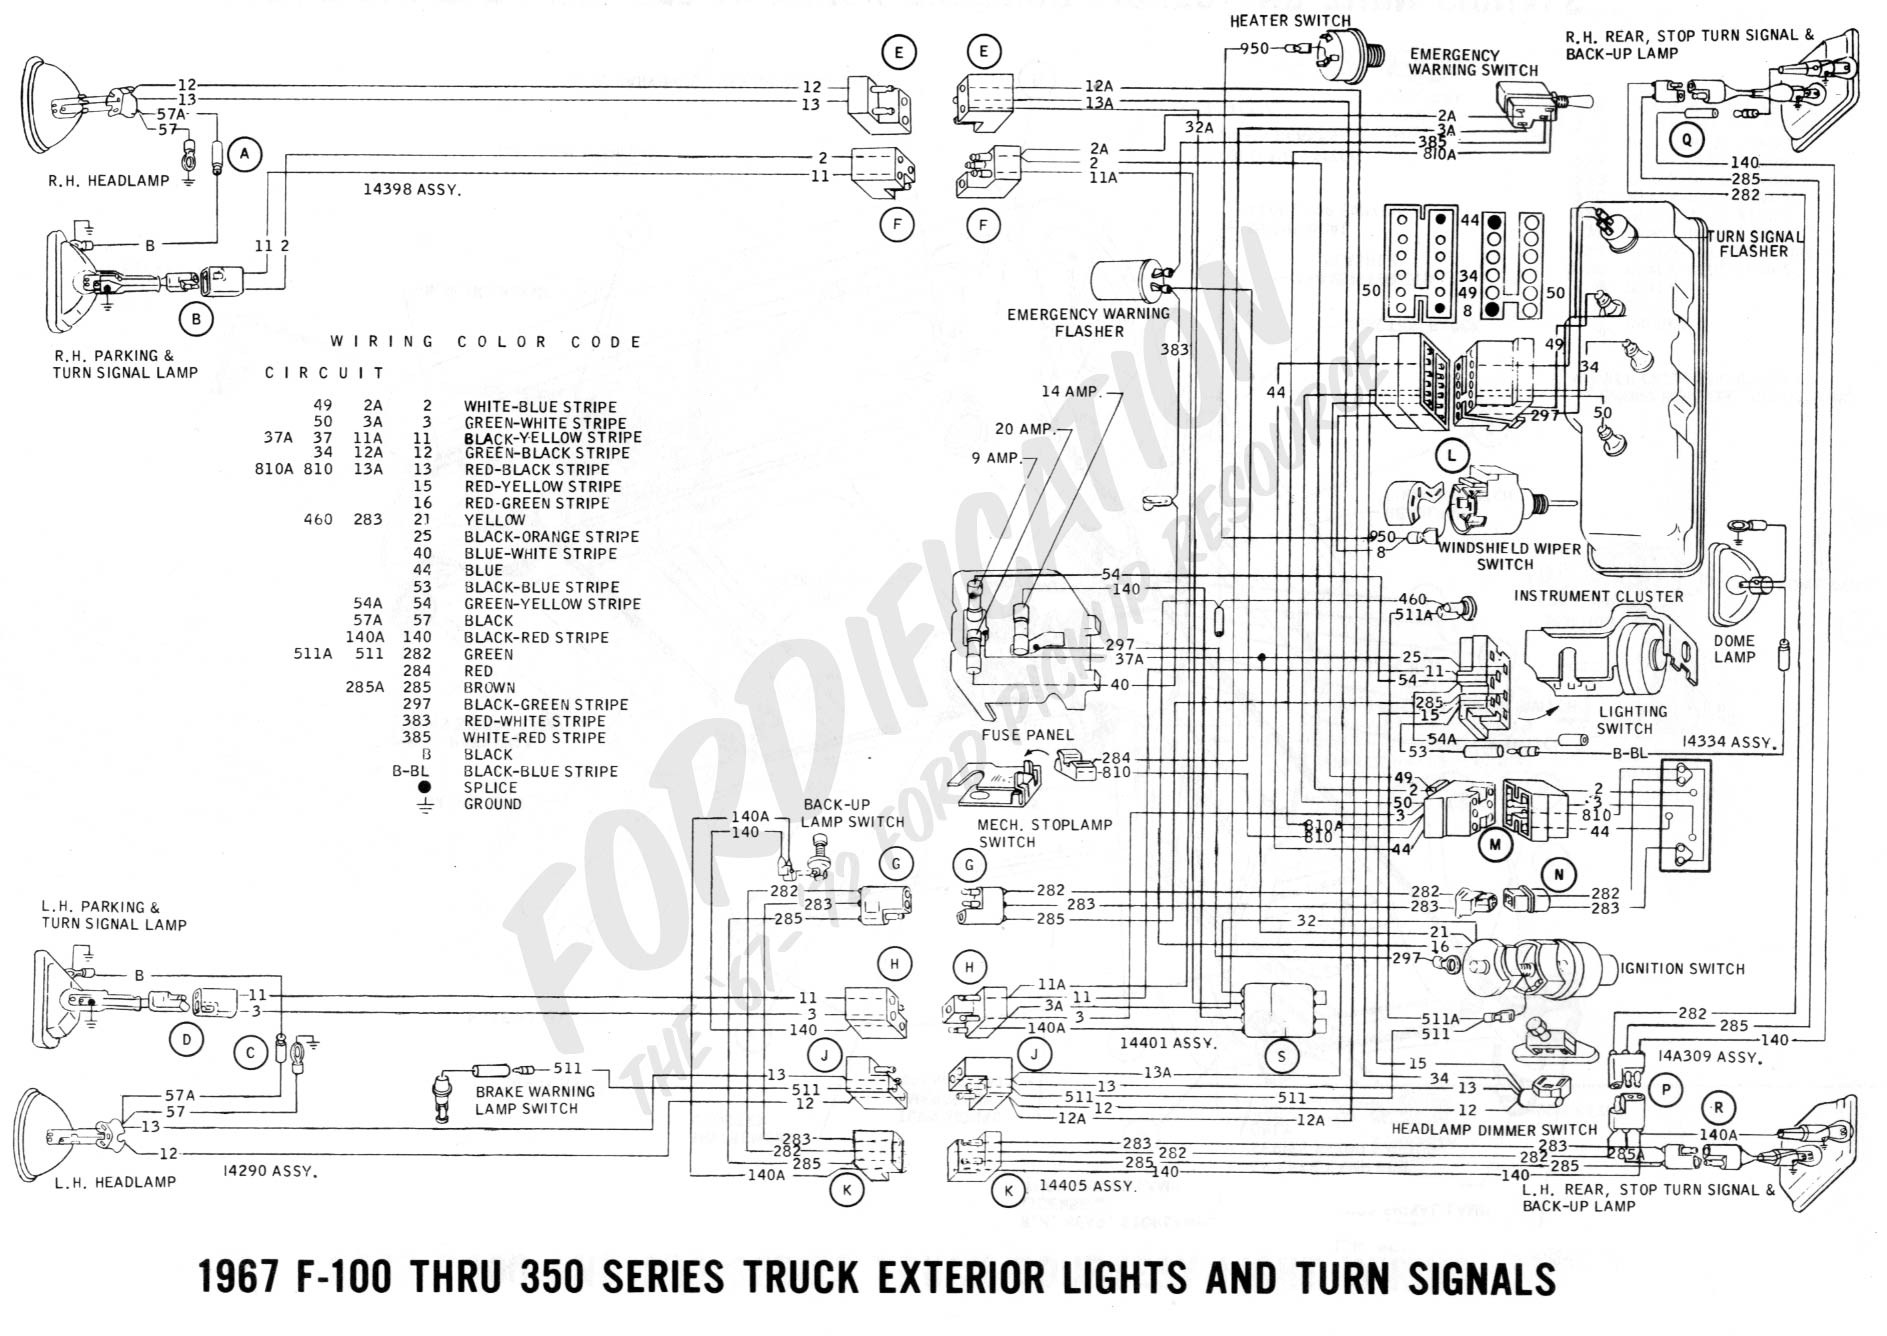 1983 toyota Pickup Wiring Diagram ford Truck Technical Drawings and Schematics Section H Wiring Of 1983 toyota Pickup Wiring Diagram